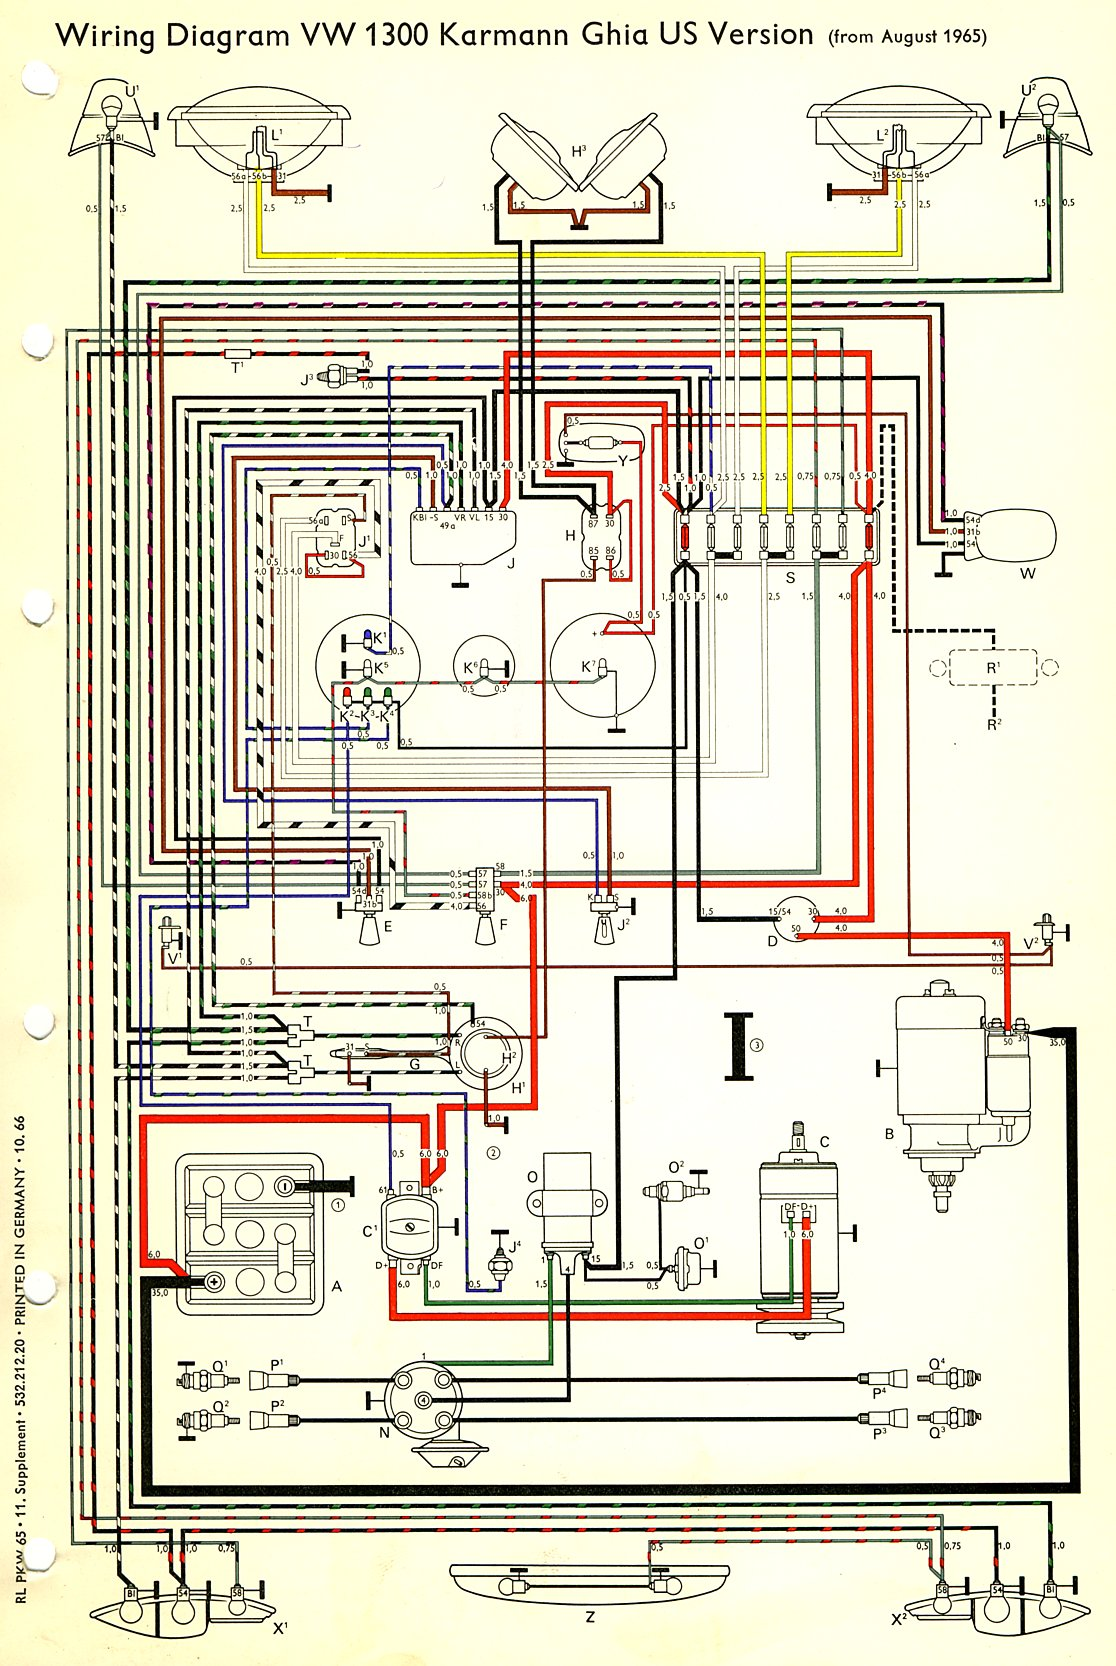 ghia_66_USA thesamba com karmann ghia wiring diagrams vw golf 3 electrical wiring diagram at webbmarketing.co